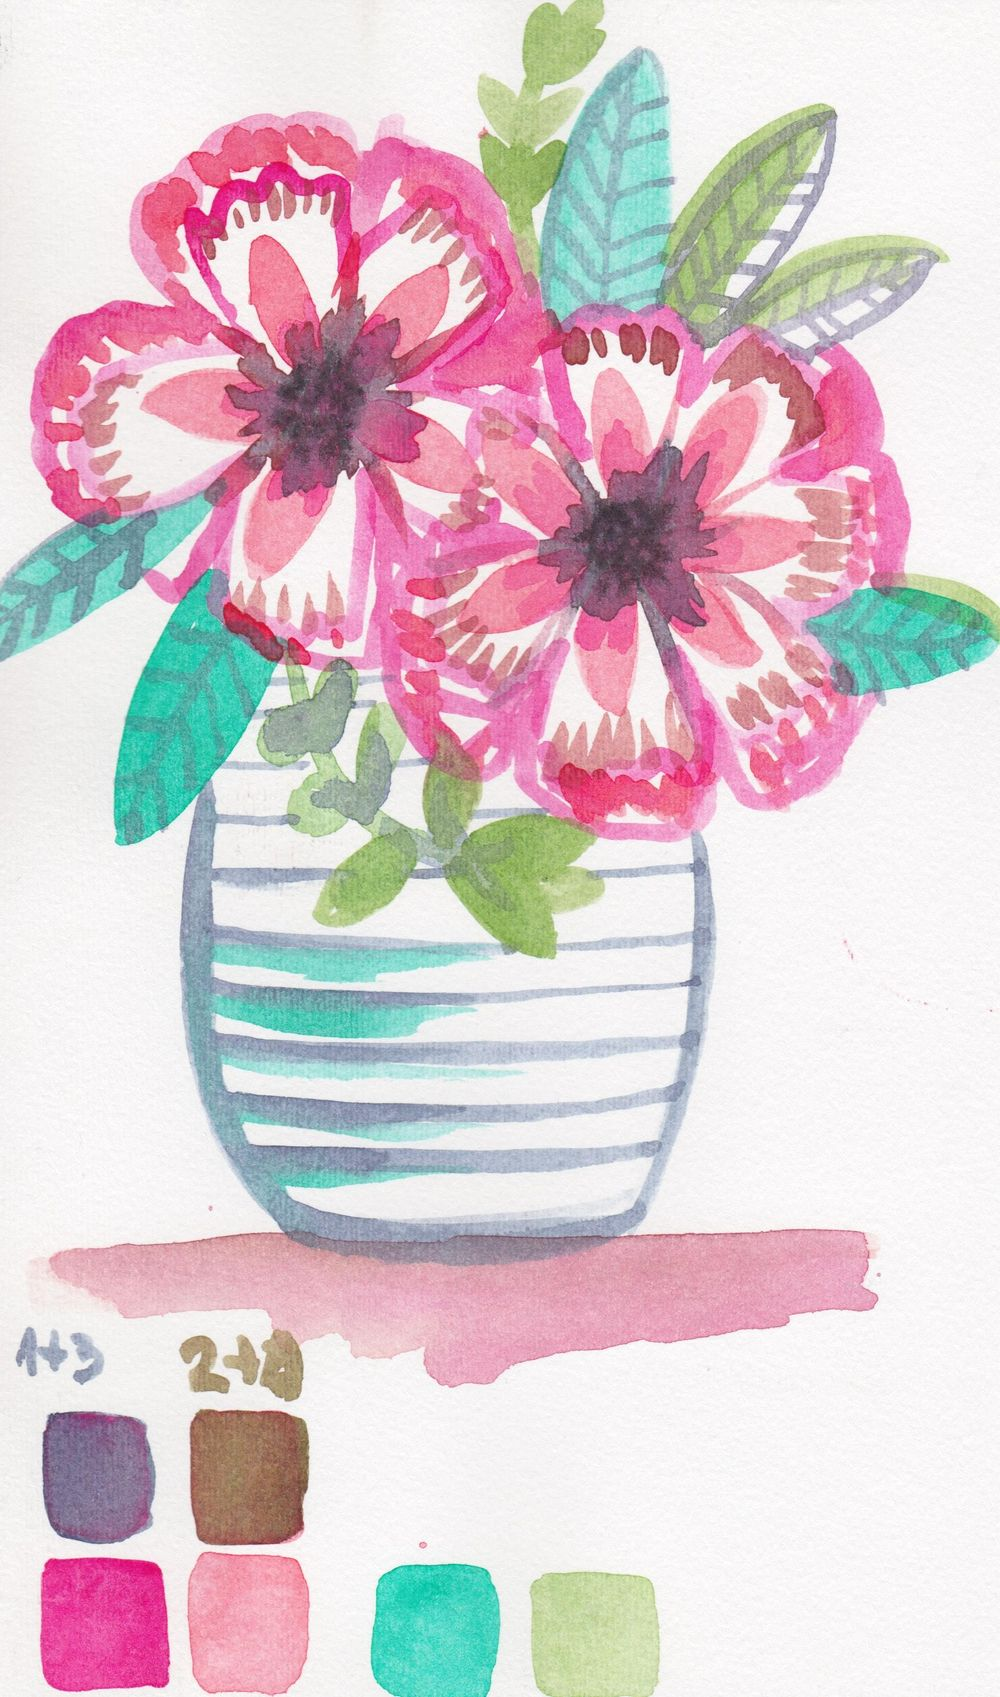 Experimenting with water color!! - image 1 - student project